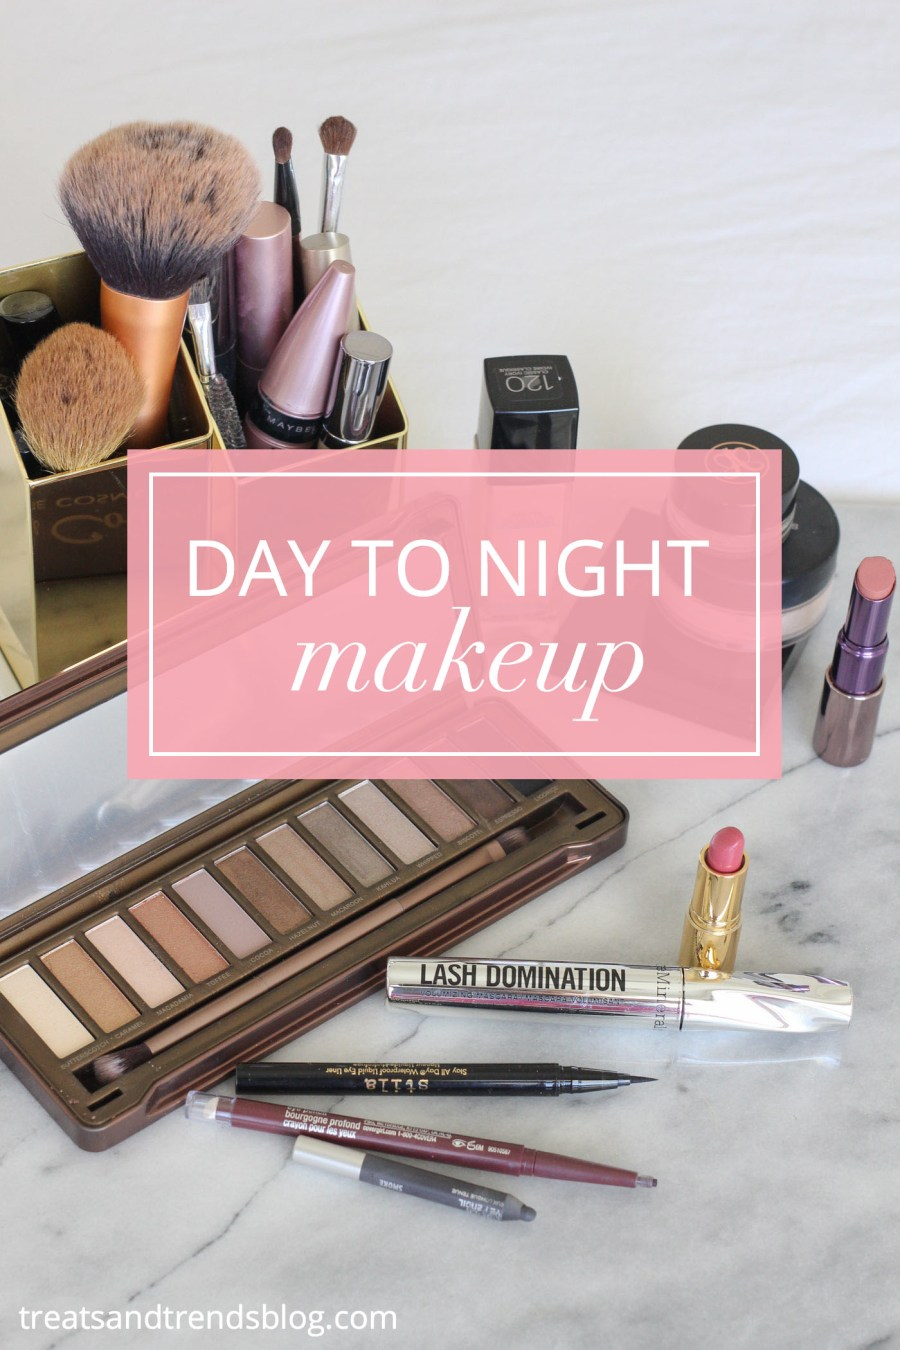 lipstick, makeup, beauty, fashion blog, las vegas, day to night makeup, Vegas blogger